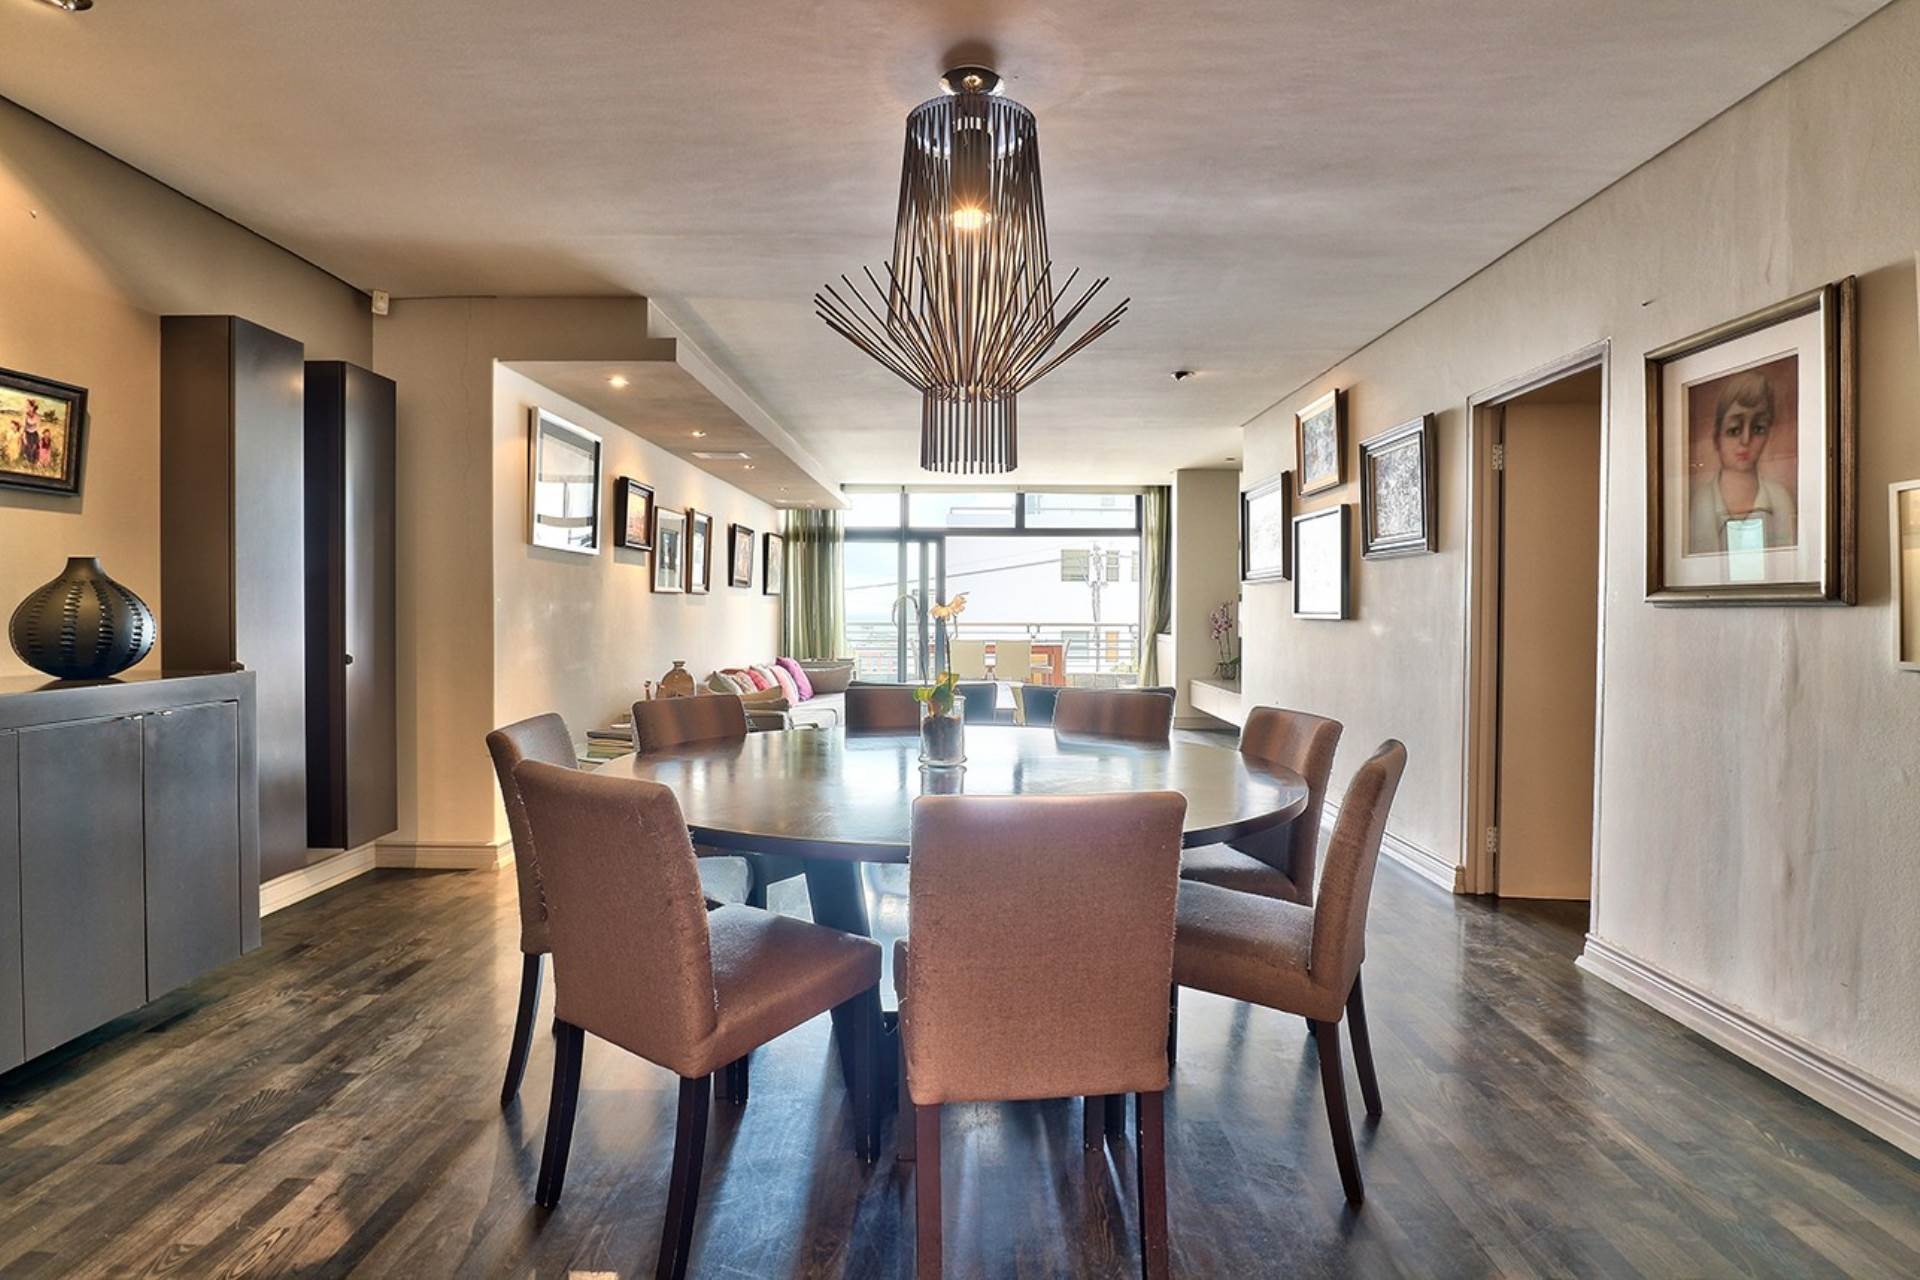 Dining Area With Solid Wood Floors